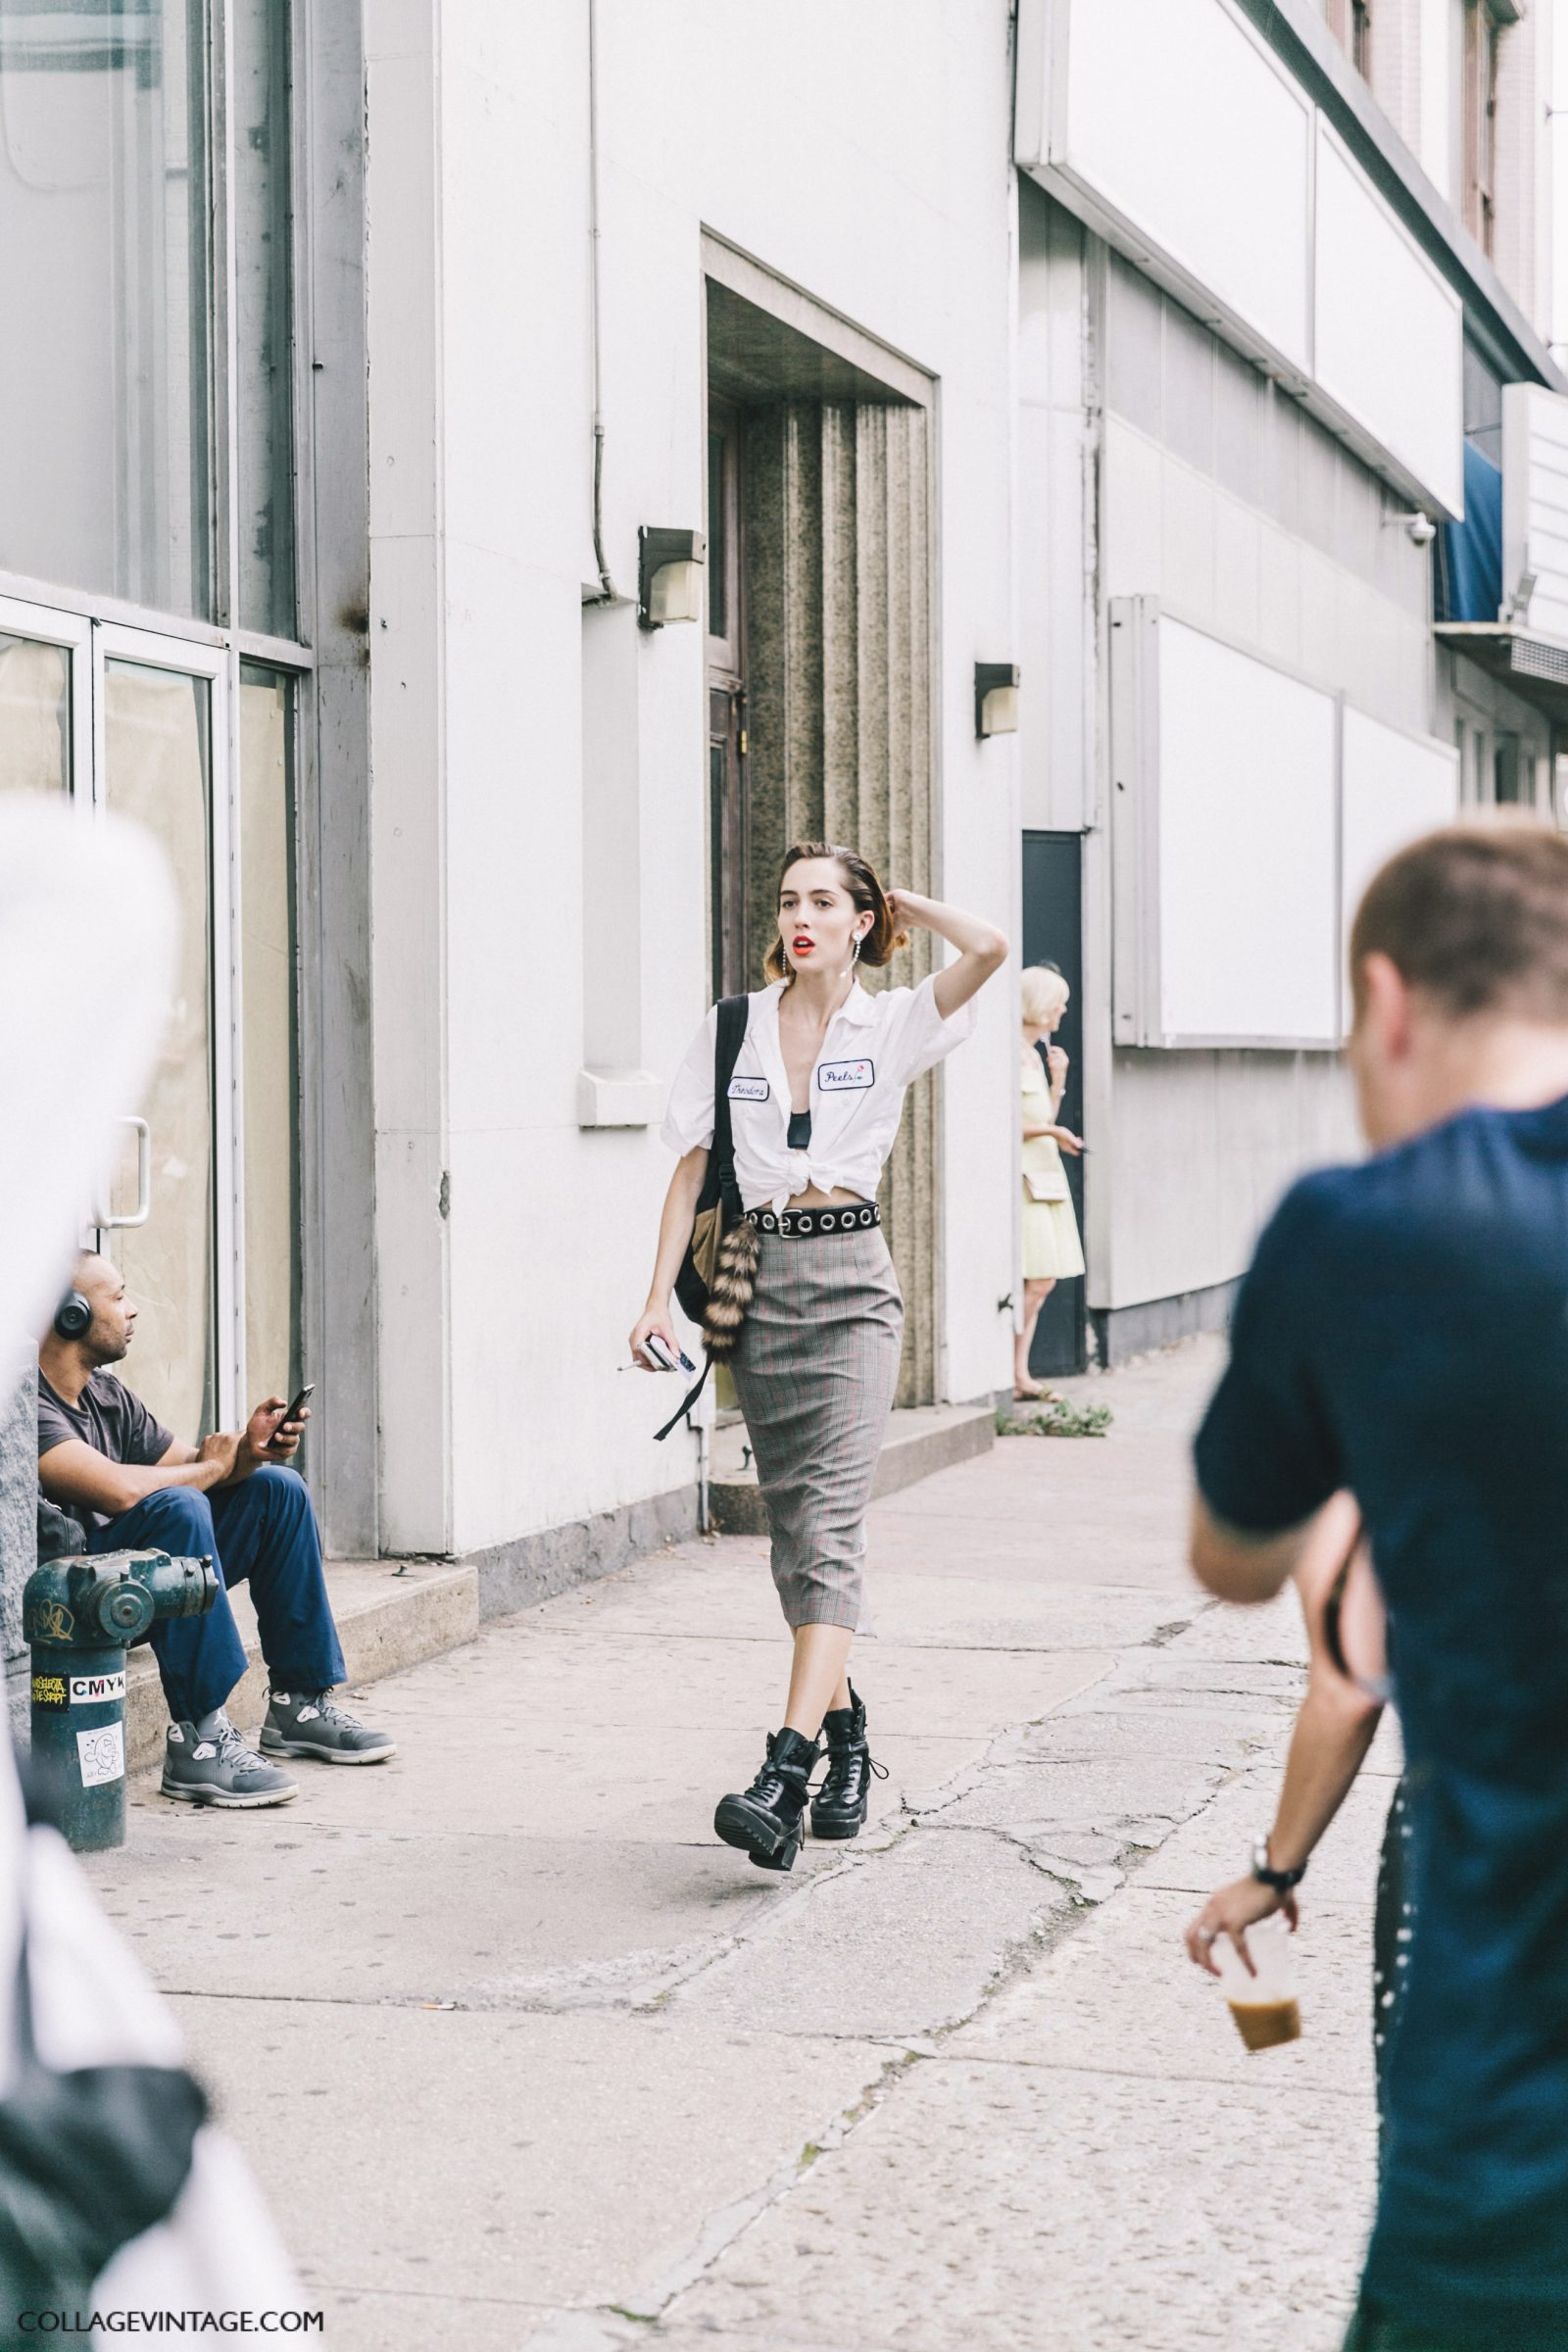 nyfw-new_york_fashion_week_ss17-street_style-outfits-collage_vintage-pencil_skirt-vintage_shrit-teddy_kweenlivan-19